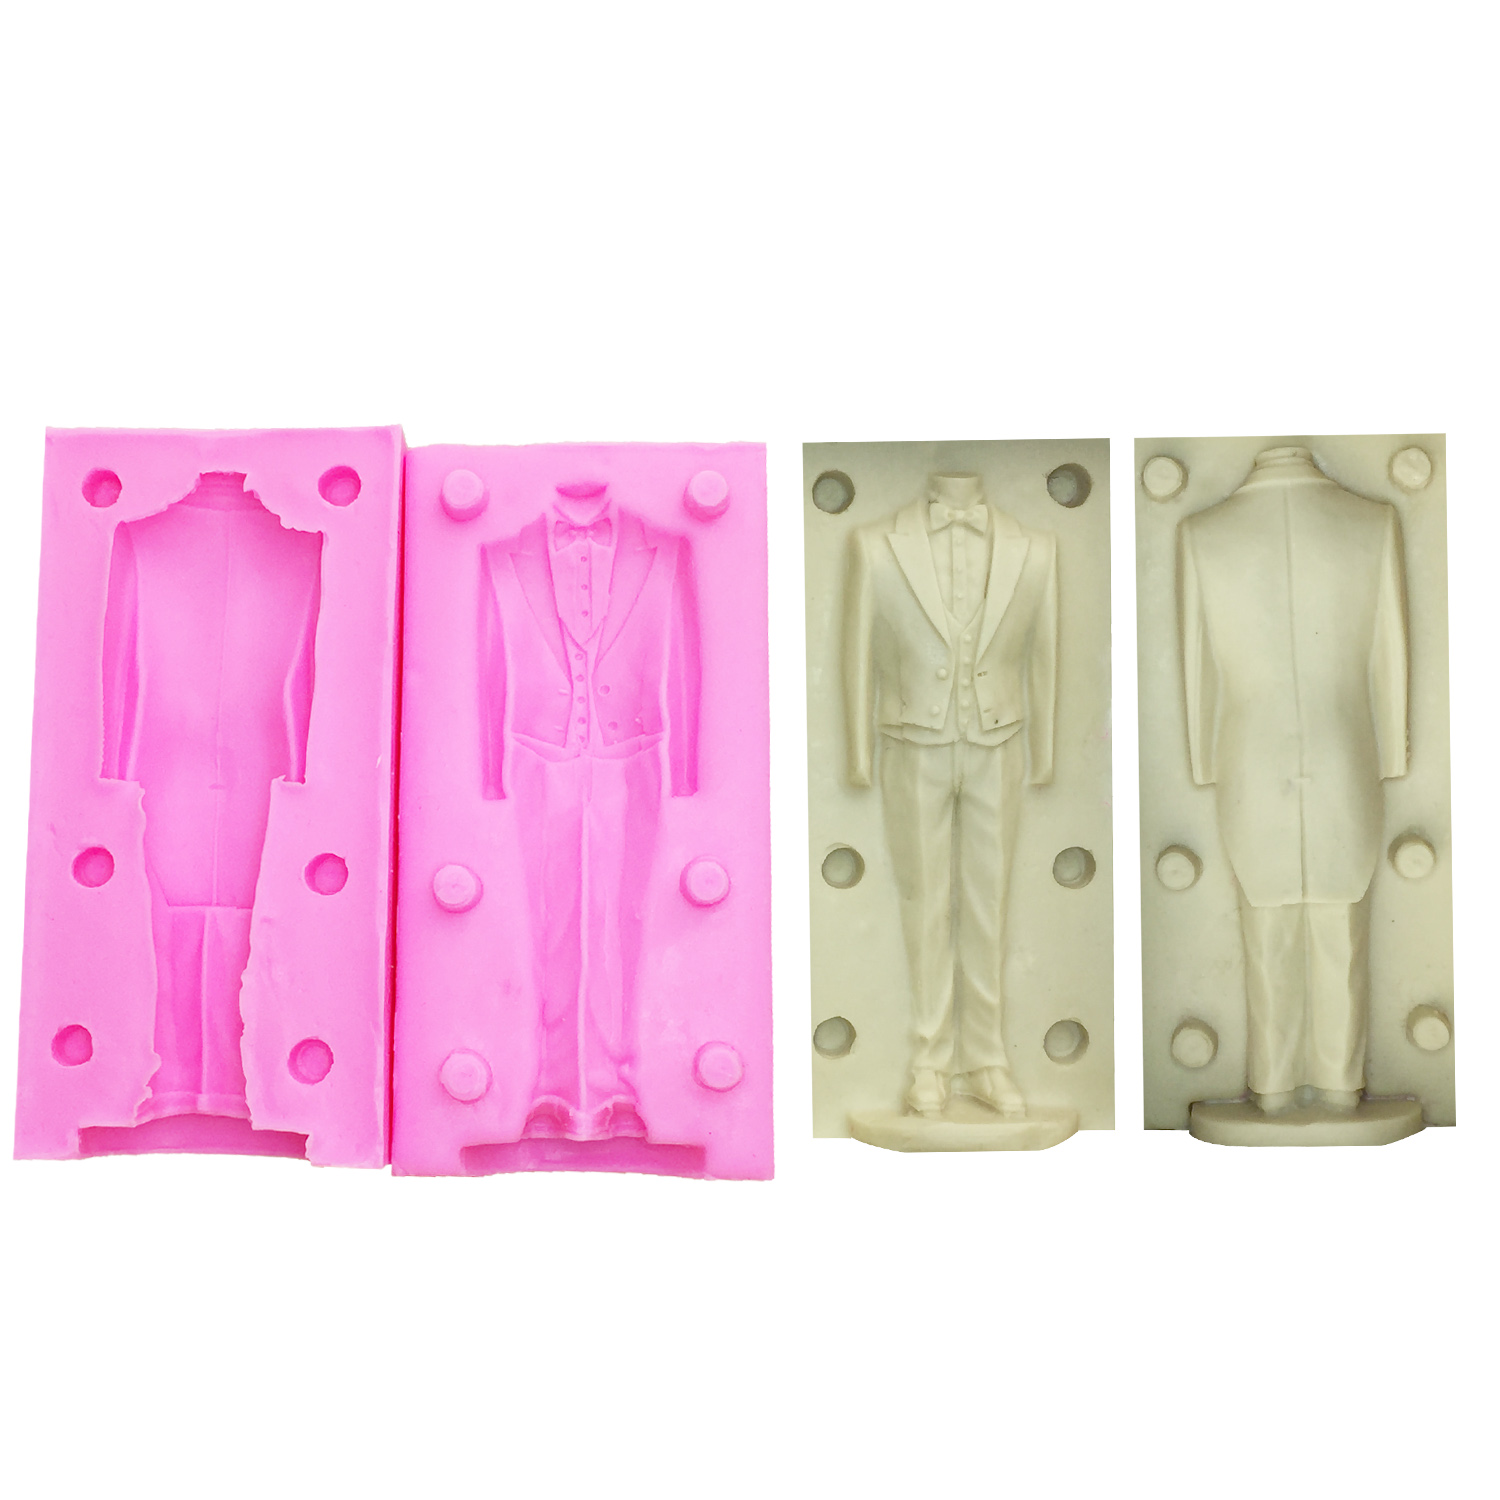 M1122 DIY men body mold human clay mold silicone mold Ruantao Wedding Suit Candle Silicone molds